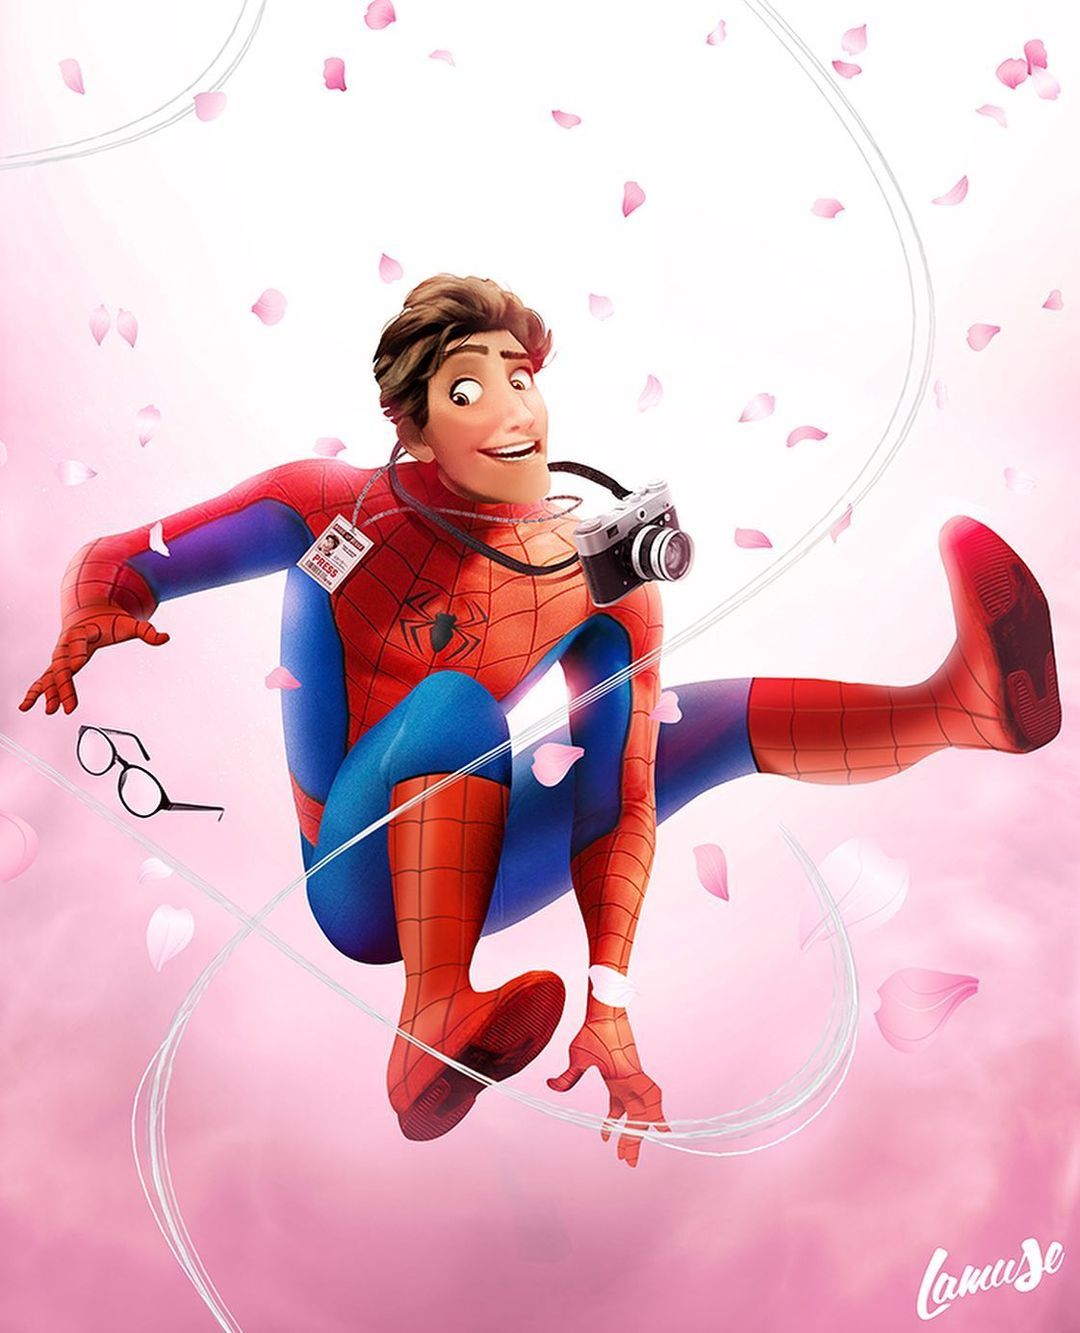 Disney characters reimagined as Marvel and DC icons 42